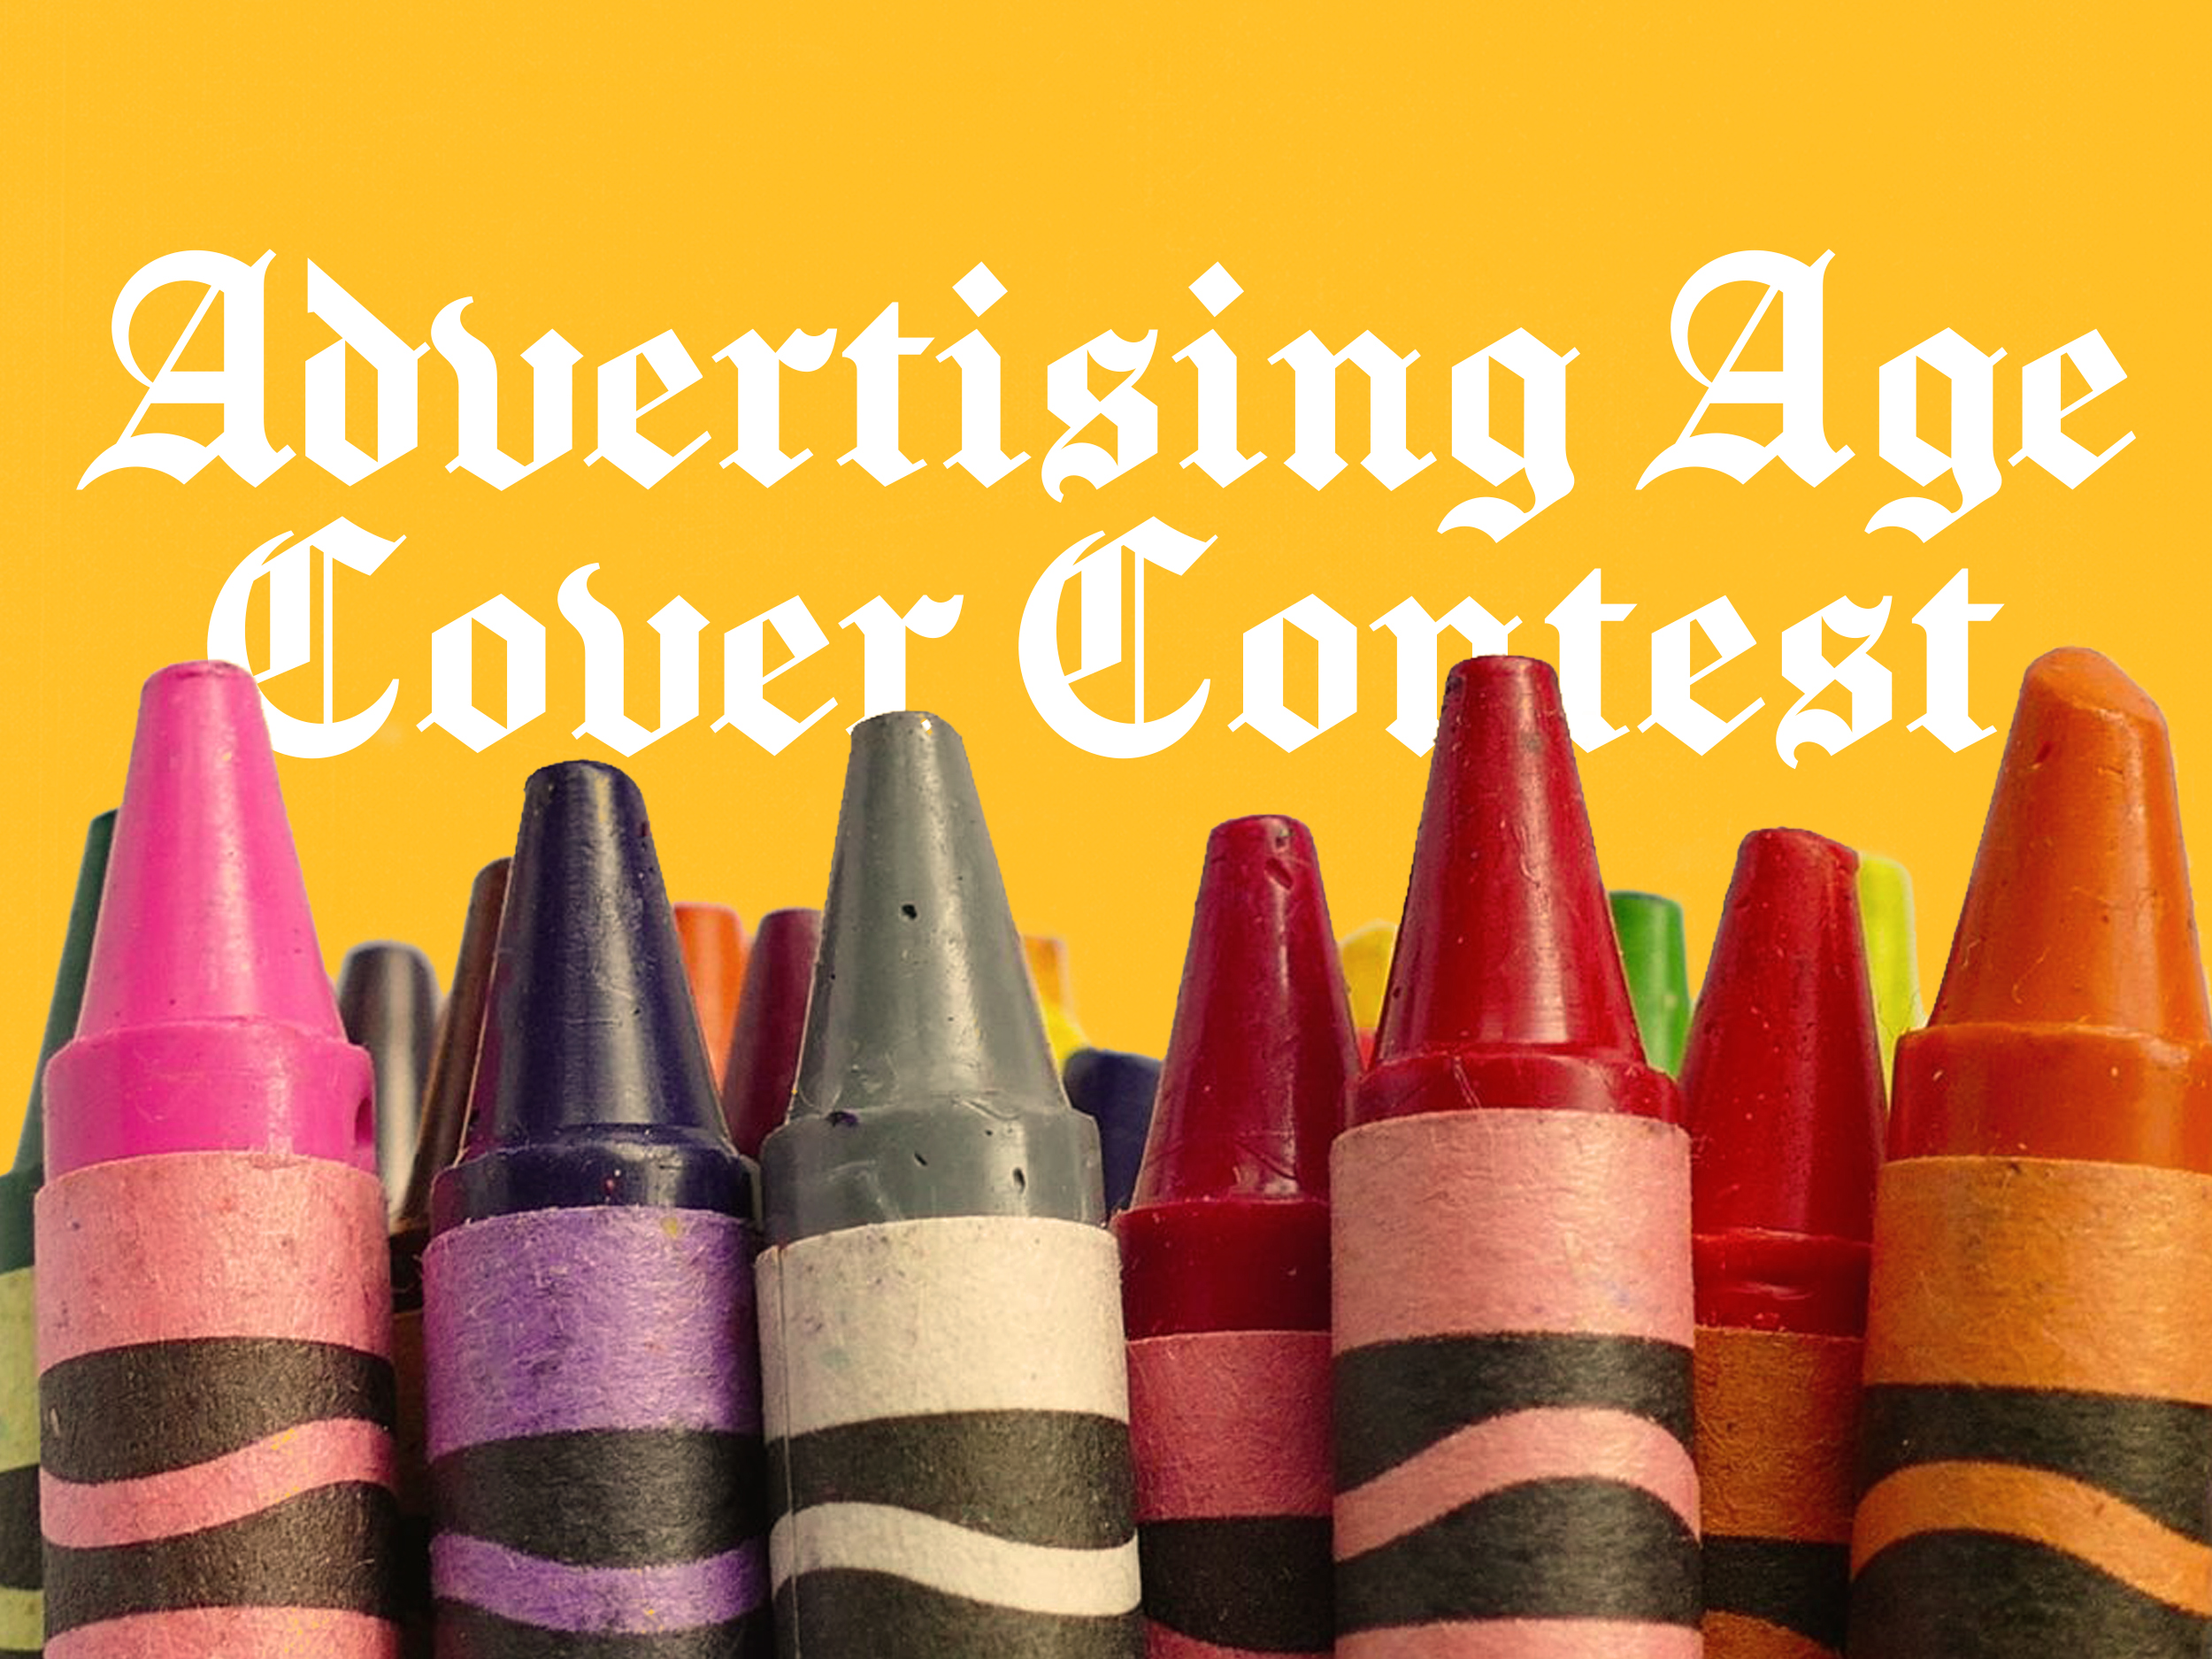 Entry to the Advertising Age Cover Contest (2017)